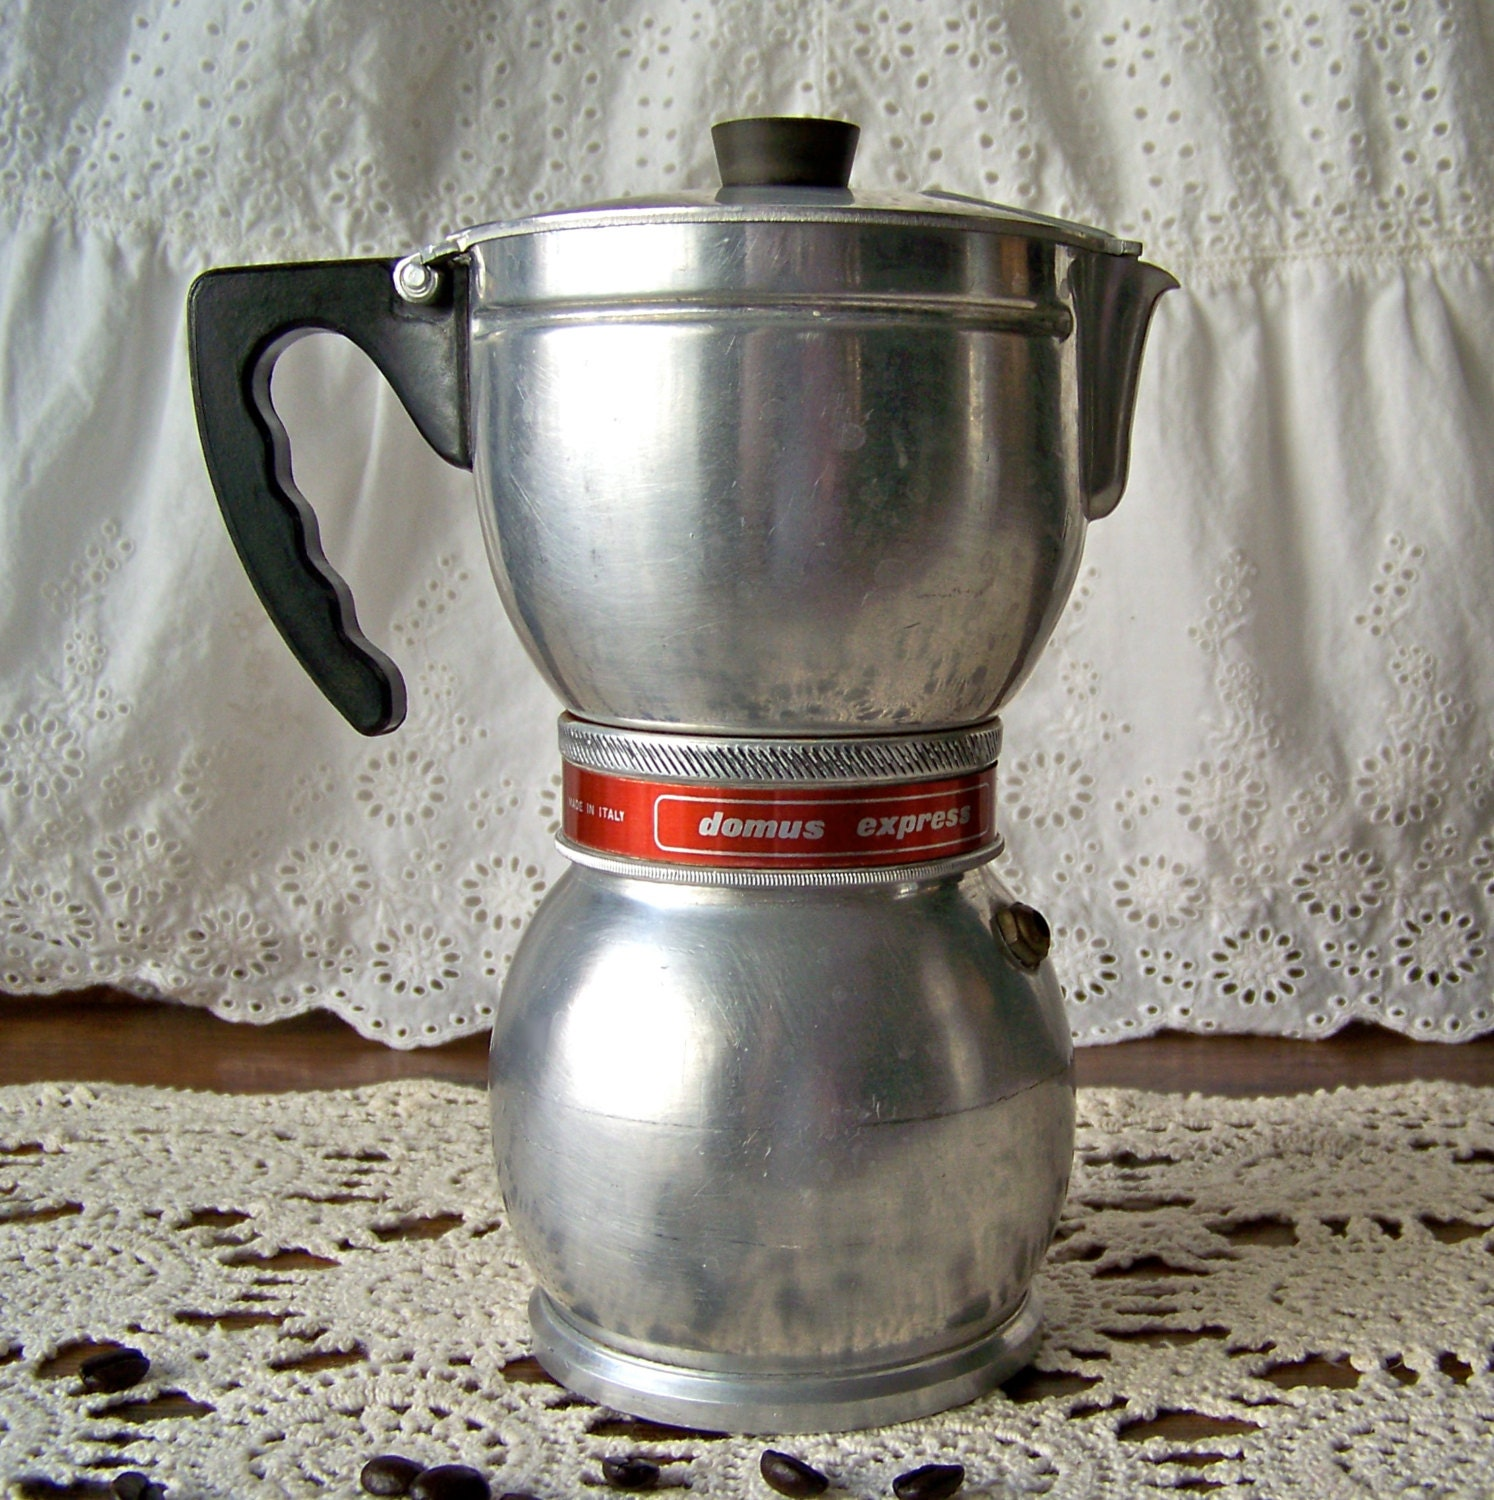 How To Use Vintage Coffee Maker : Vintage Coffee Maker Domus Express Brevettata Italy